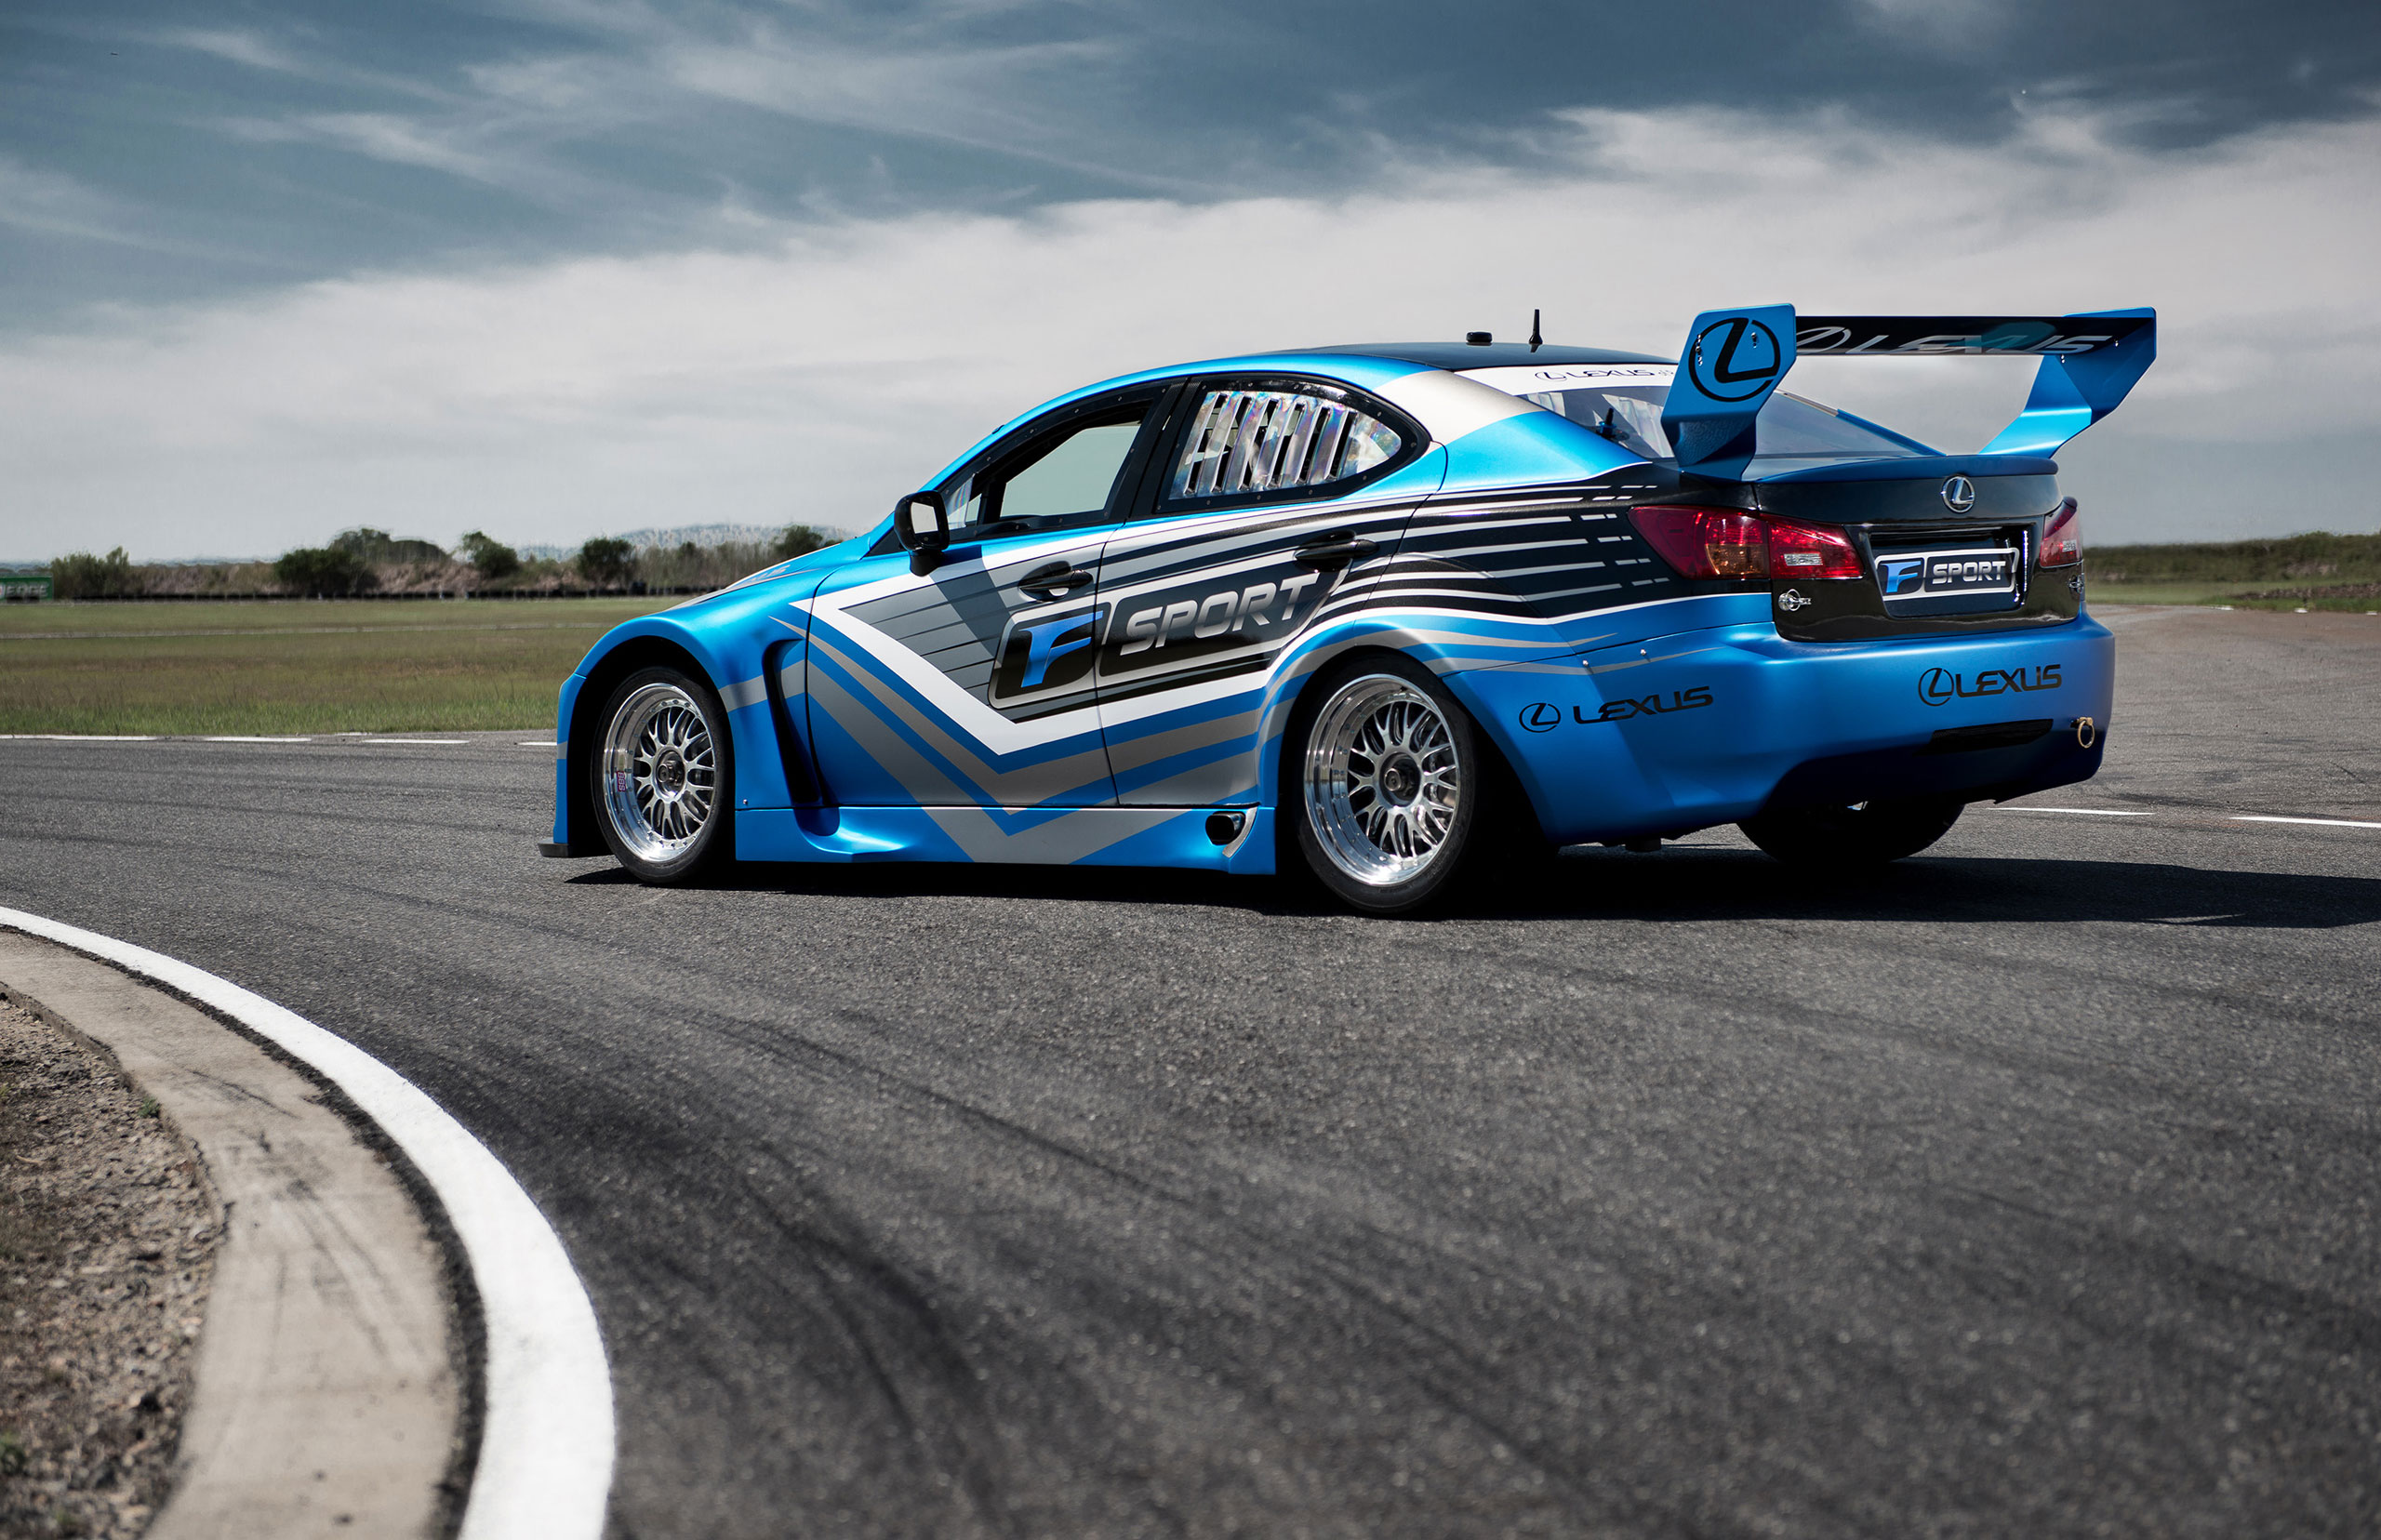 ... Lexus of Brisbane has purchased three Lexus IS F-based race cars